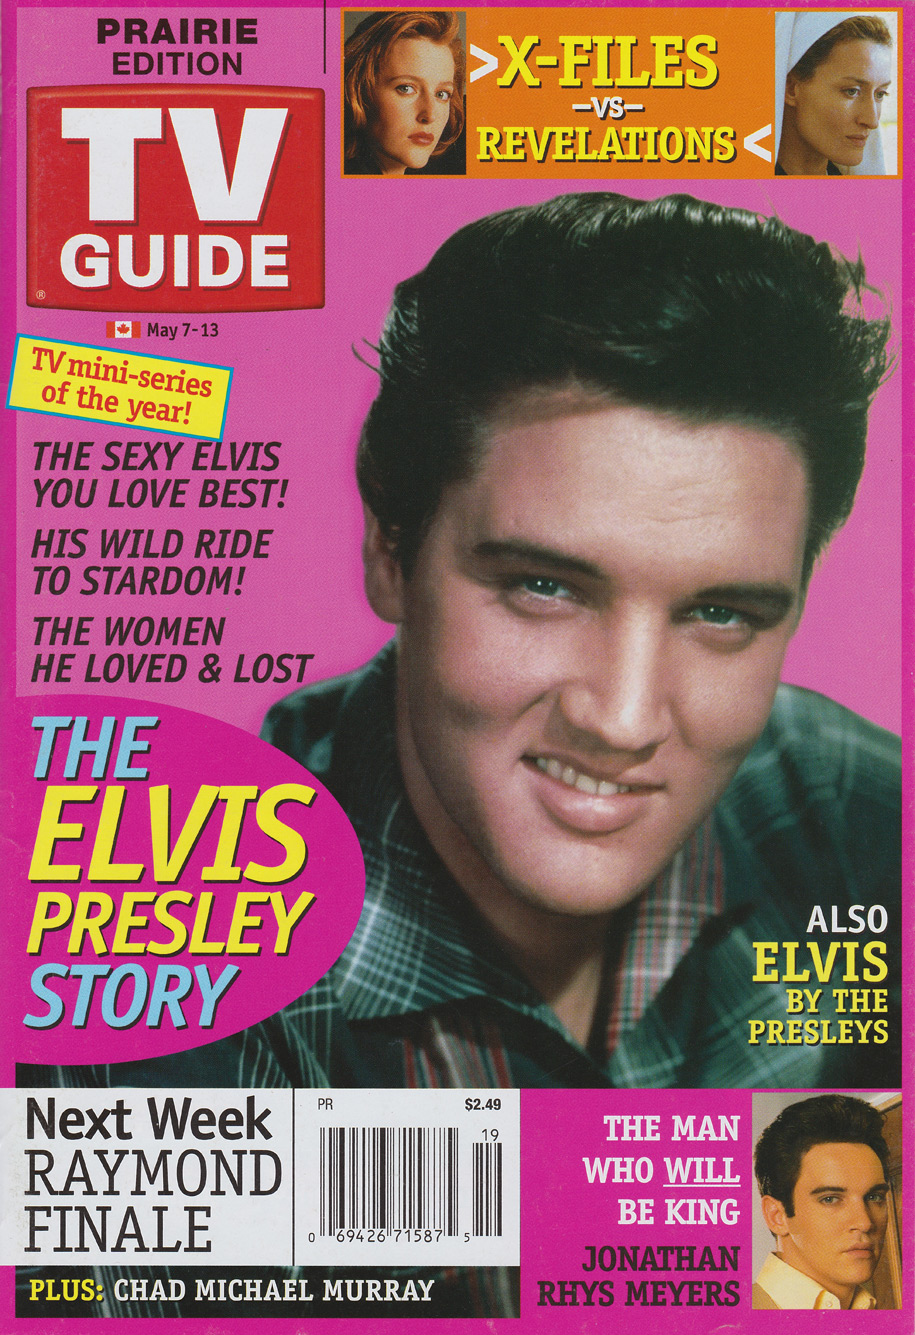 TV Guide May 7 2005 Prairie Edition Front Cover